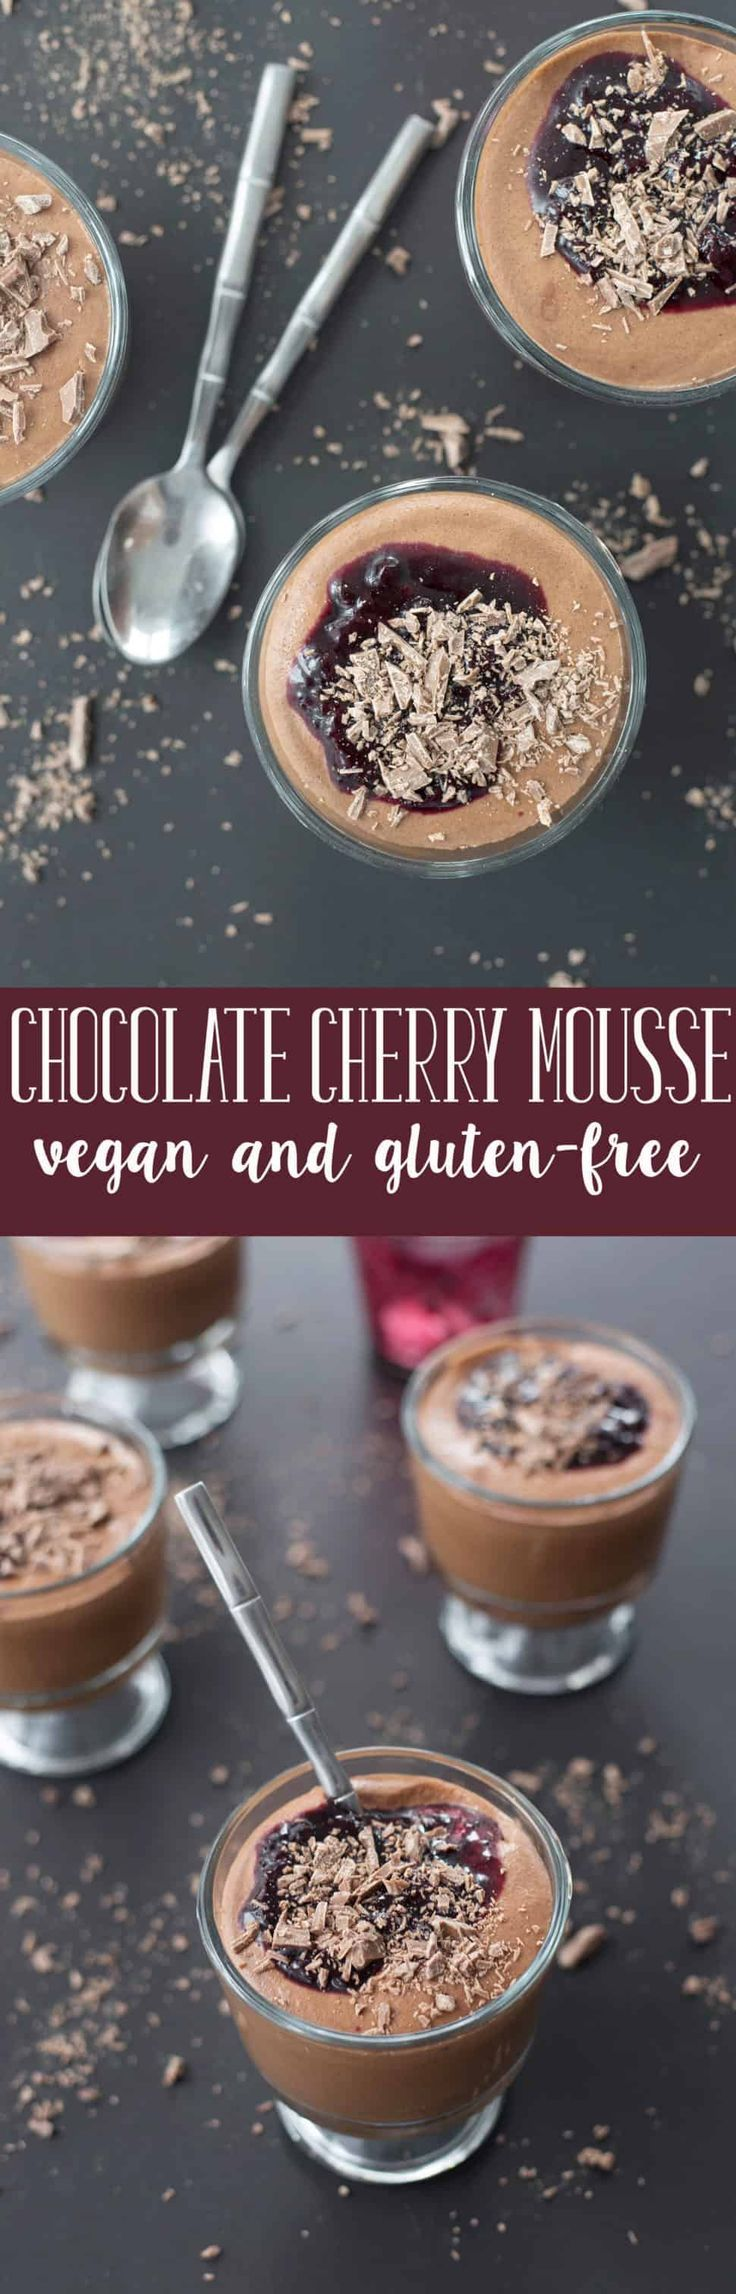 Chocolate Cherry Mousse! Made with aquafaba. A light and creamy dessert, perfect for Valentine's Day. Vegan, Gluten-Free and Nut-free. #chocolate #valentinesdayrecipes #healthyveganrecipes #healthydesserts #dessert #glutenfree #vegan   www.delishknowledge.com